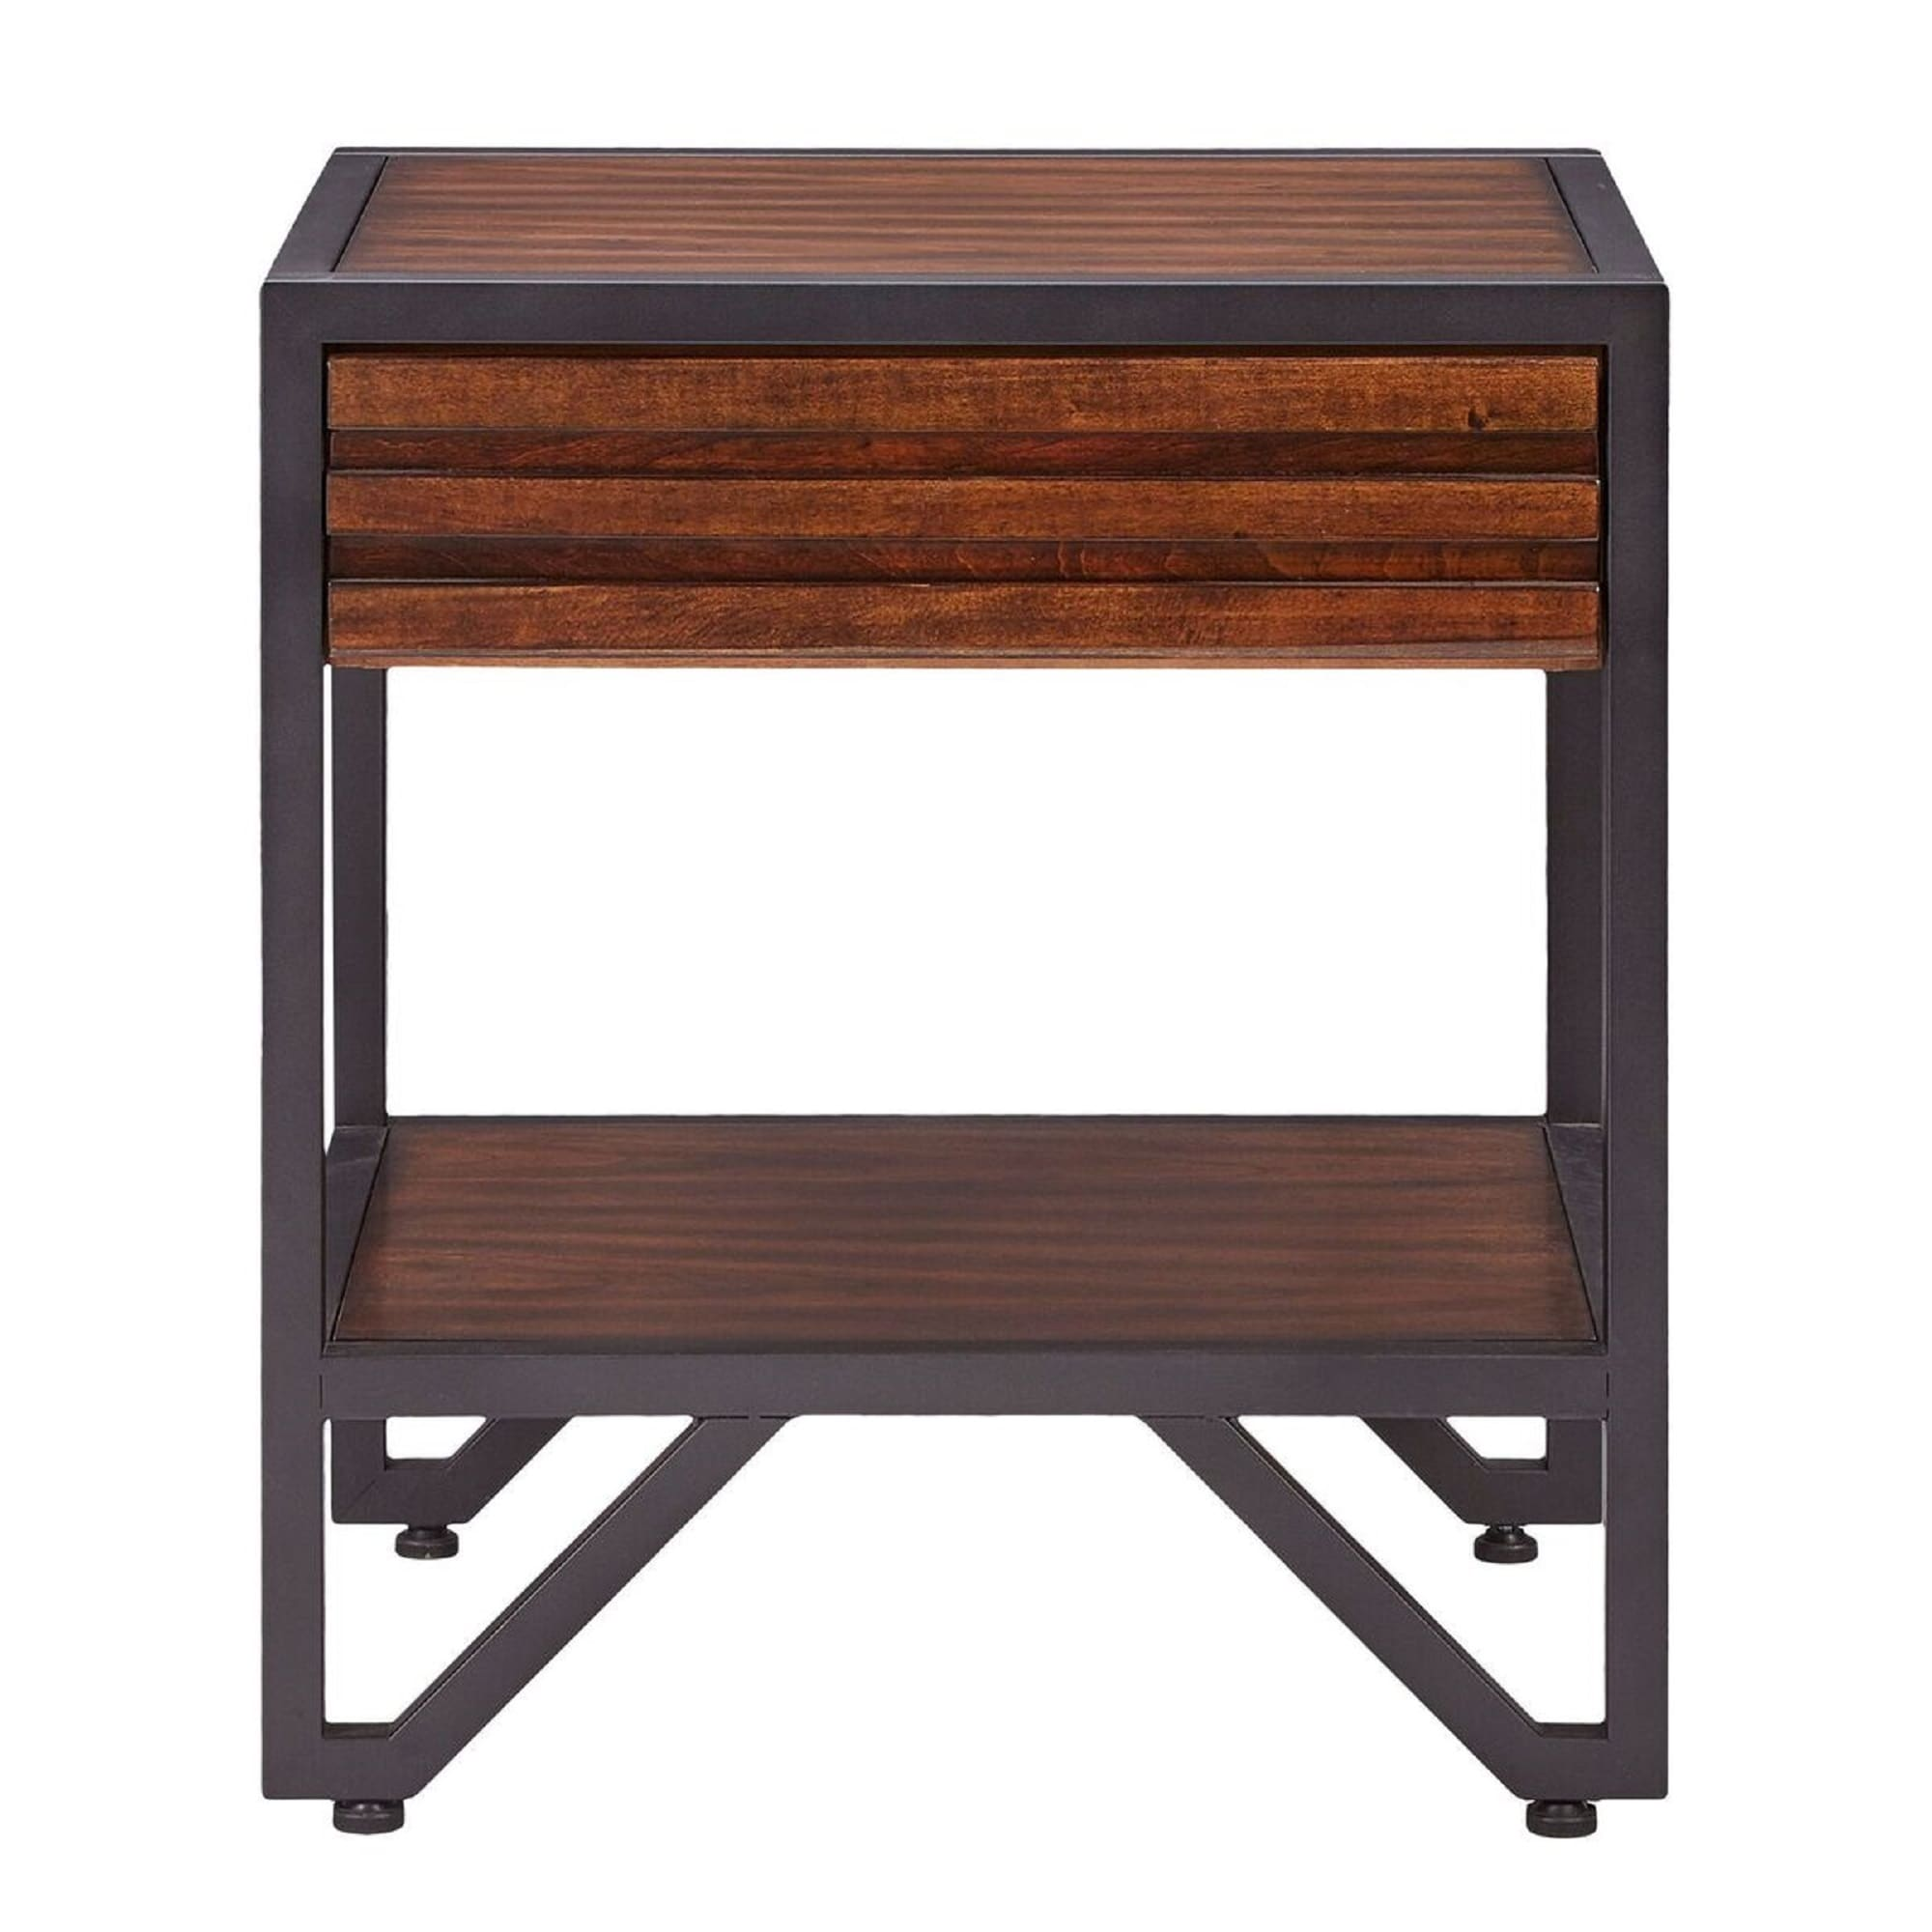 wood drum side table probably outrageous favorite end fantastic beautiful colored metal nightstand chico stacked inspire modern free shipping today furniture rochester target